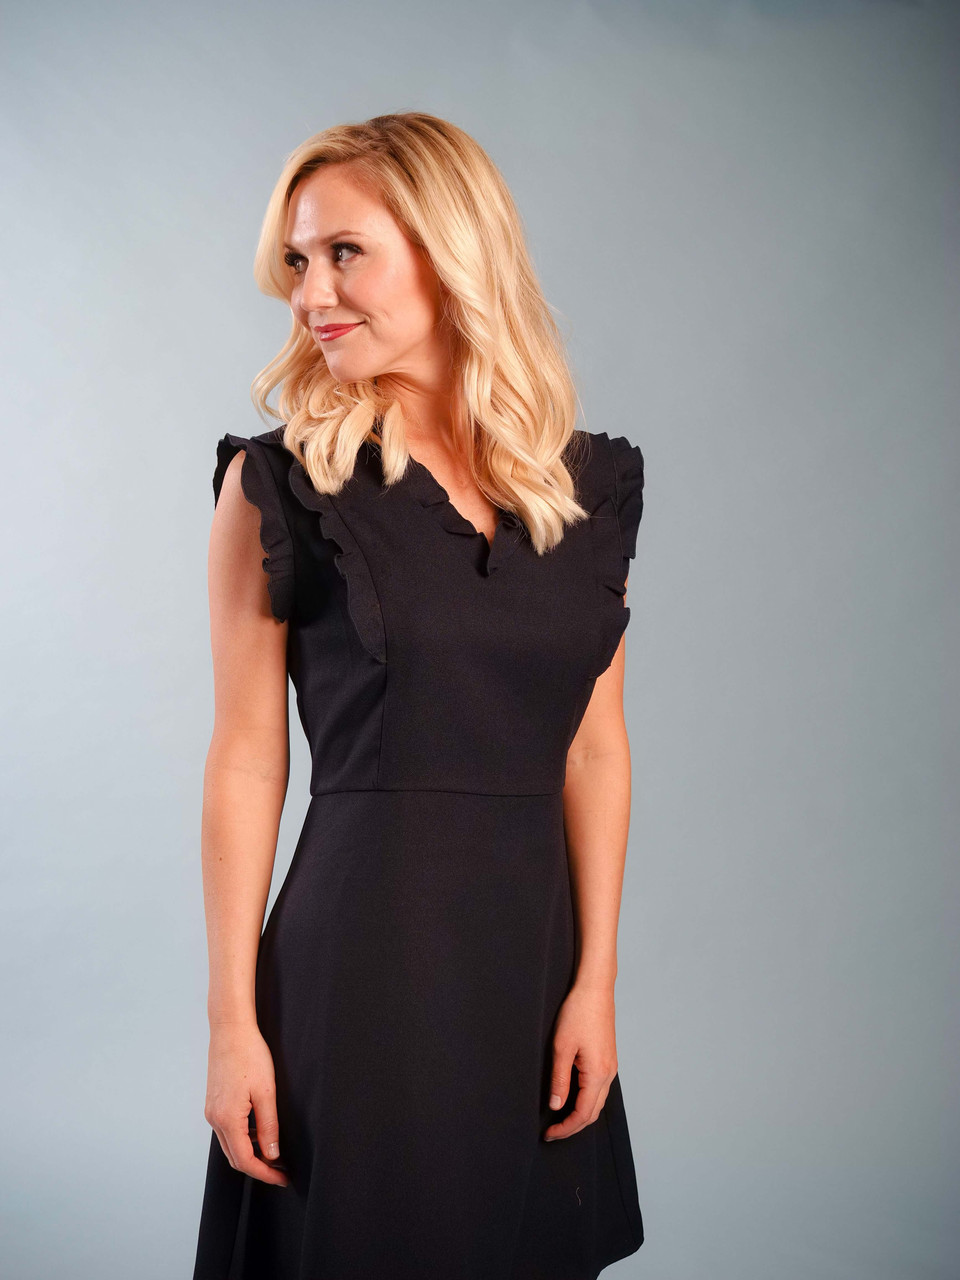 Lined navy dress with ruffle detail